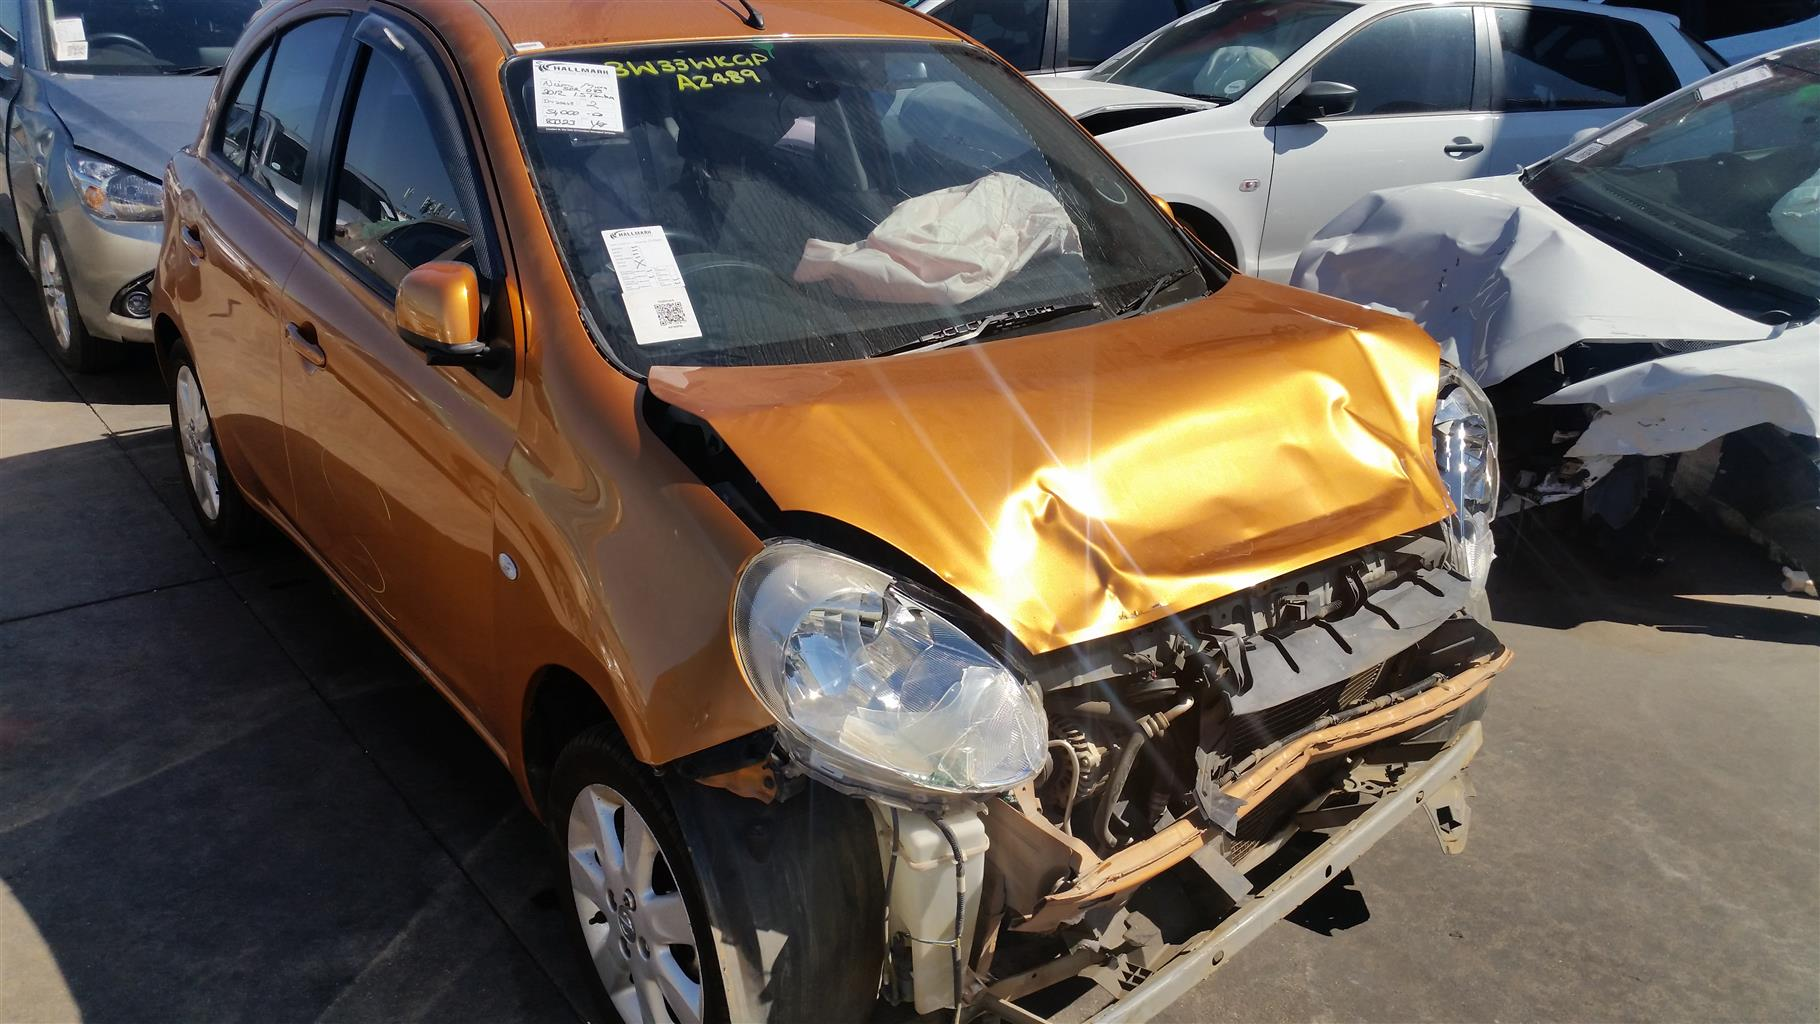 Salvage/Accident Damaged Nissan Micra 2012 1.5 with 83323KM (REF IW25668)